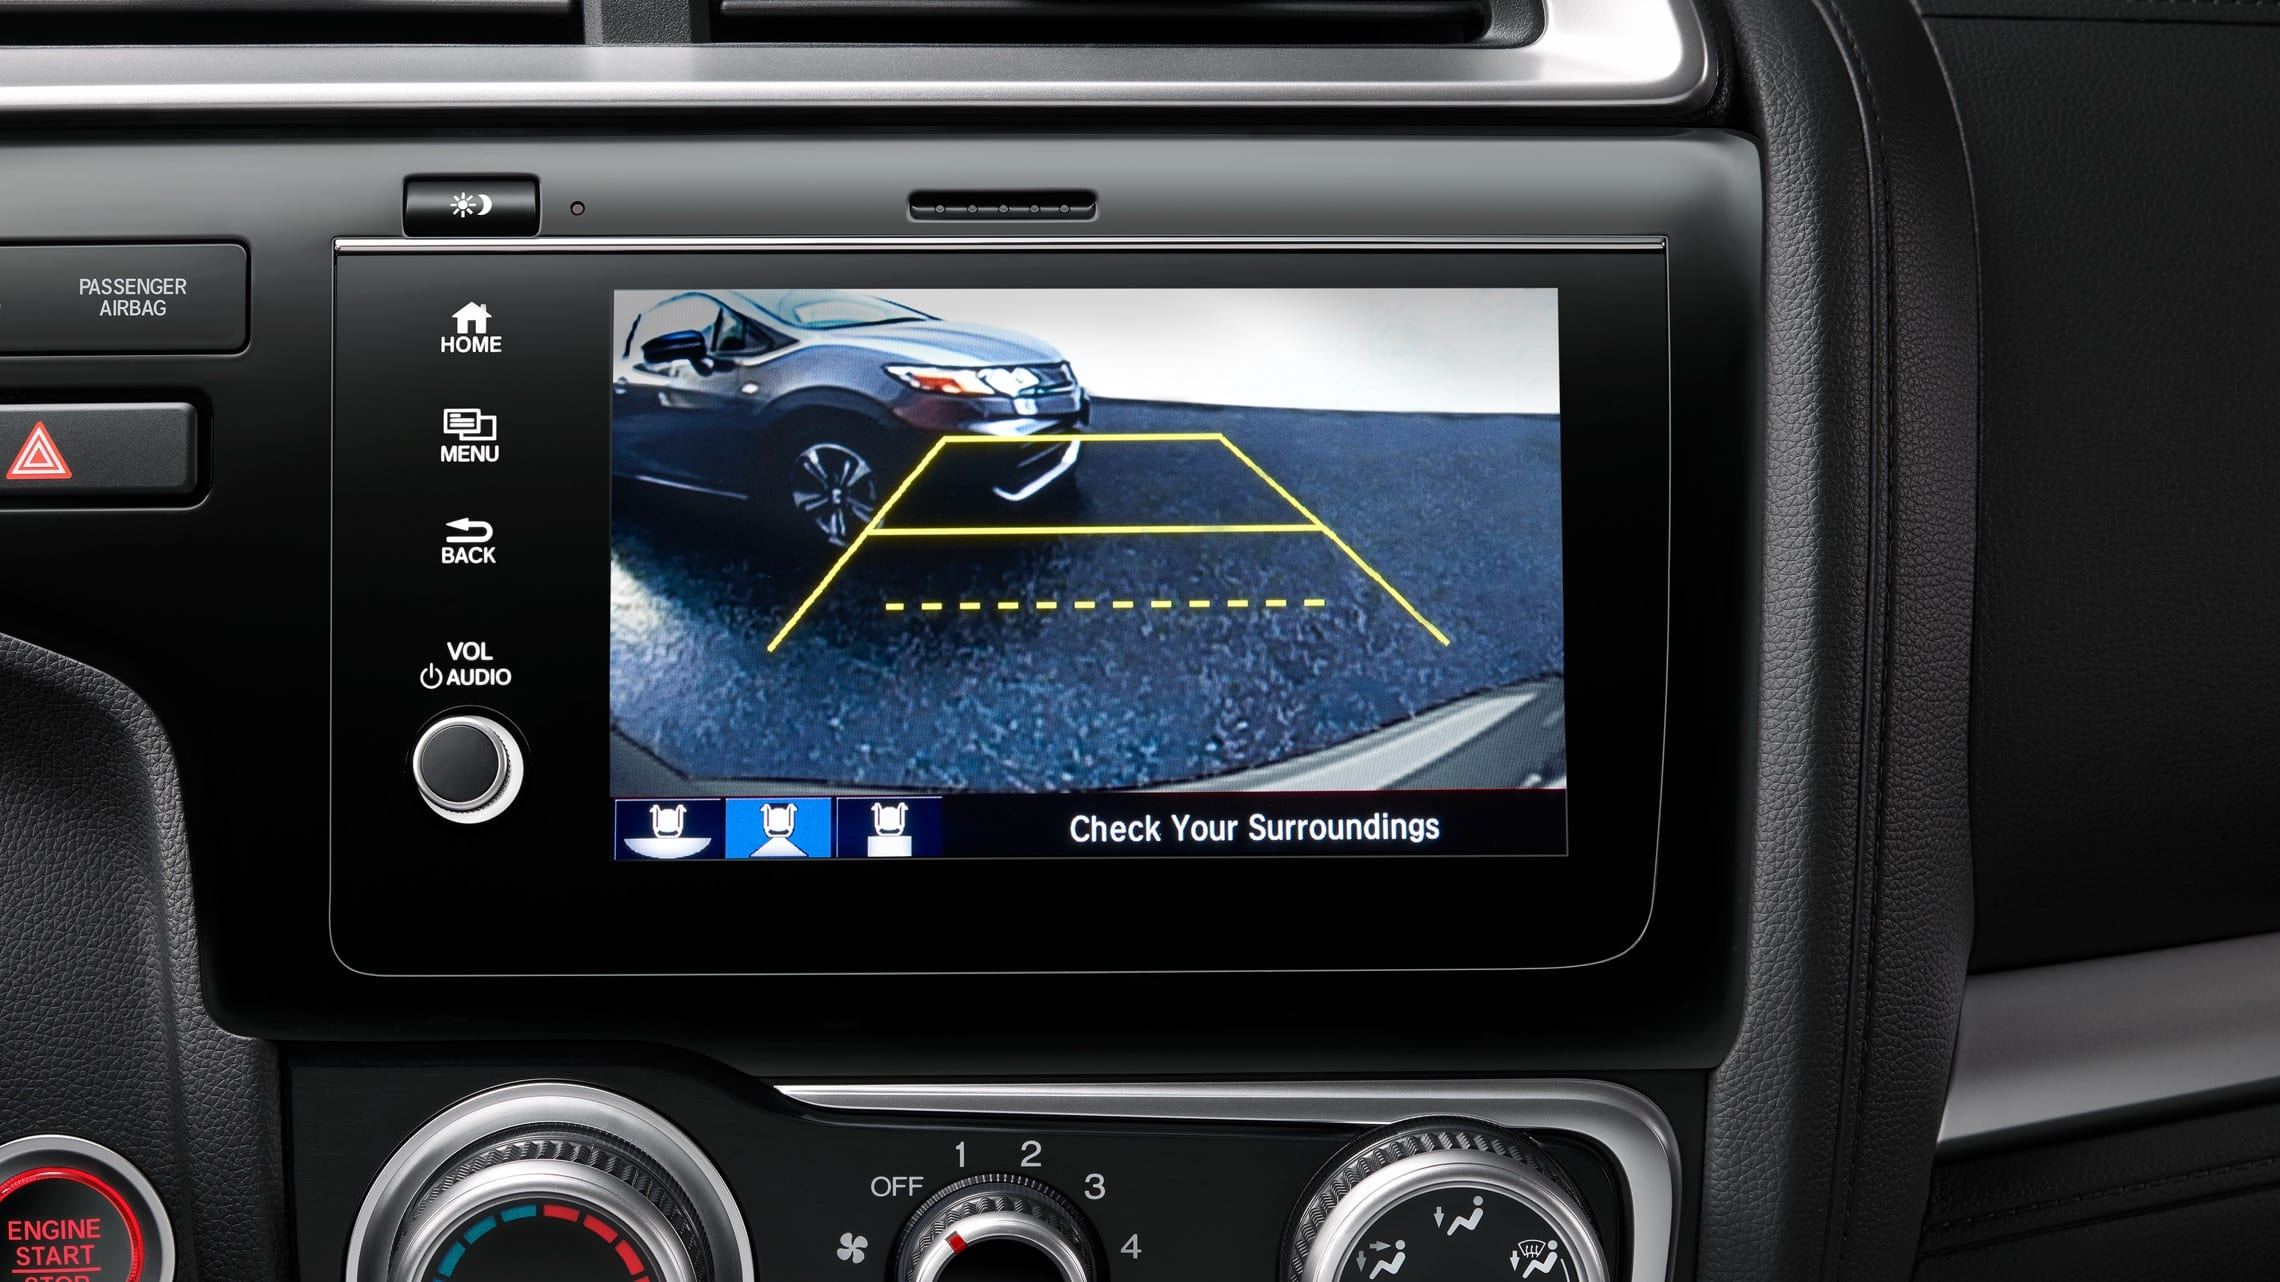 Display Audio touch-screen with multi-angle rearview camera detail displayed on 2020 Honda Fit.